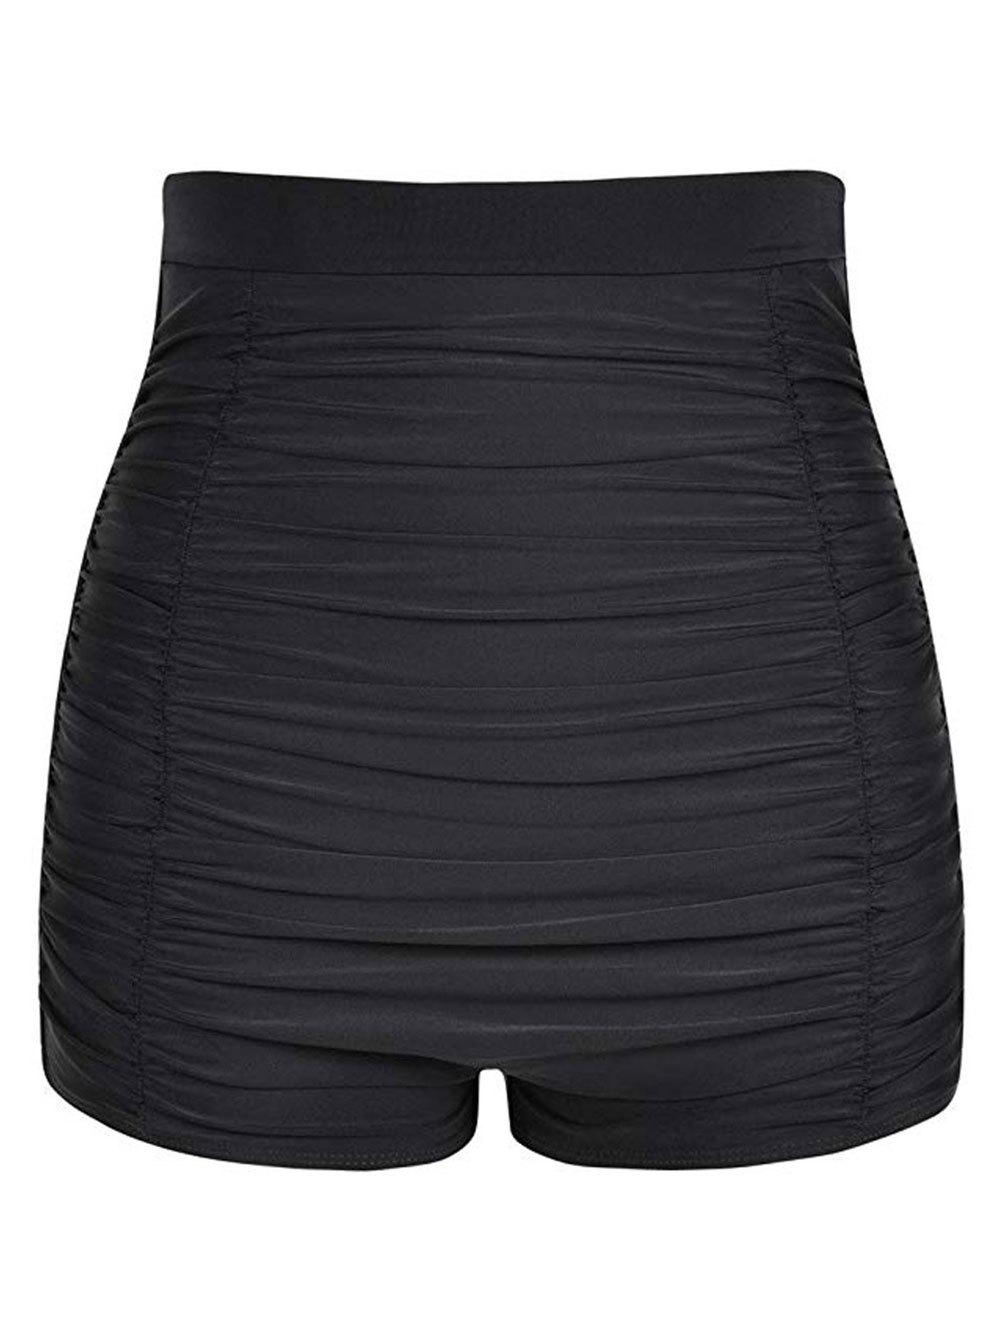 Ruched High Waisted Swim Bottom - BLACK L